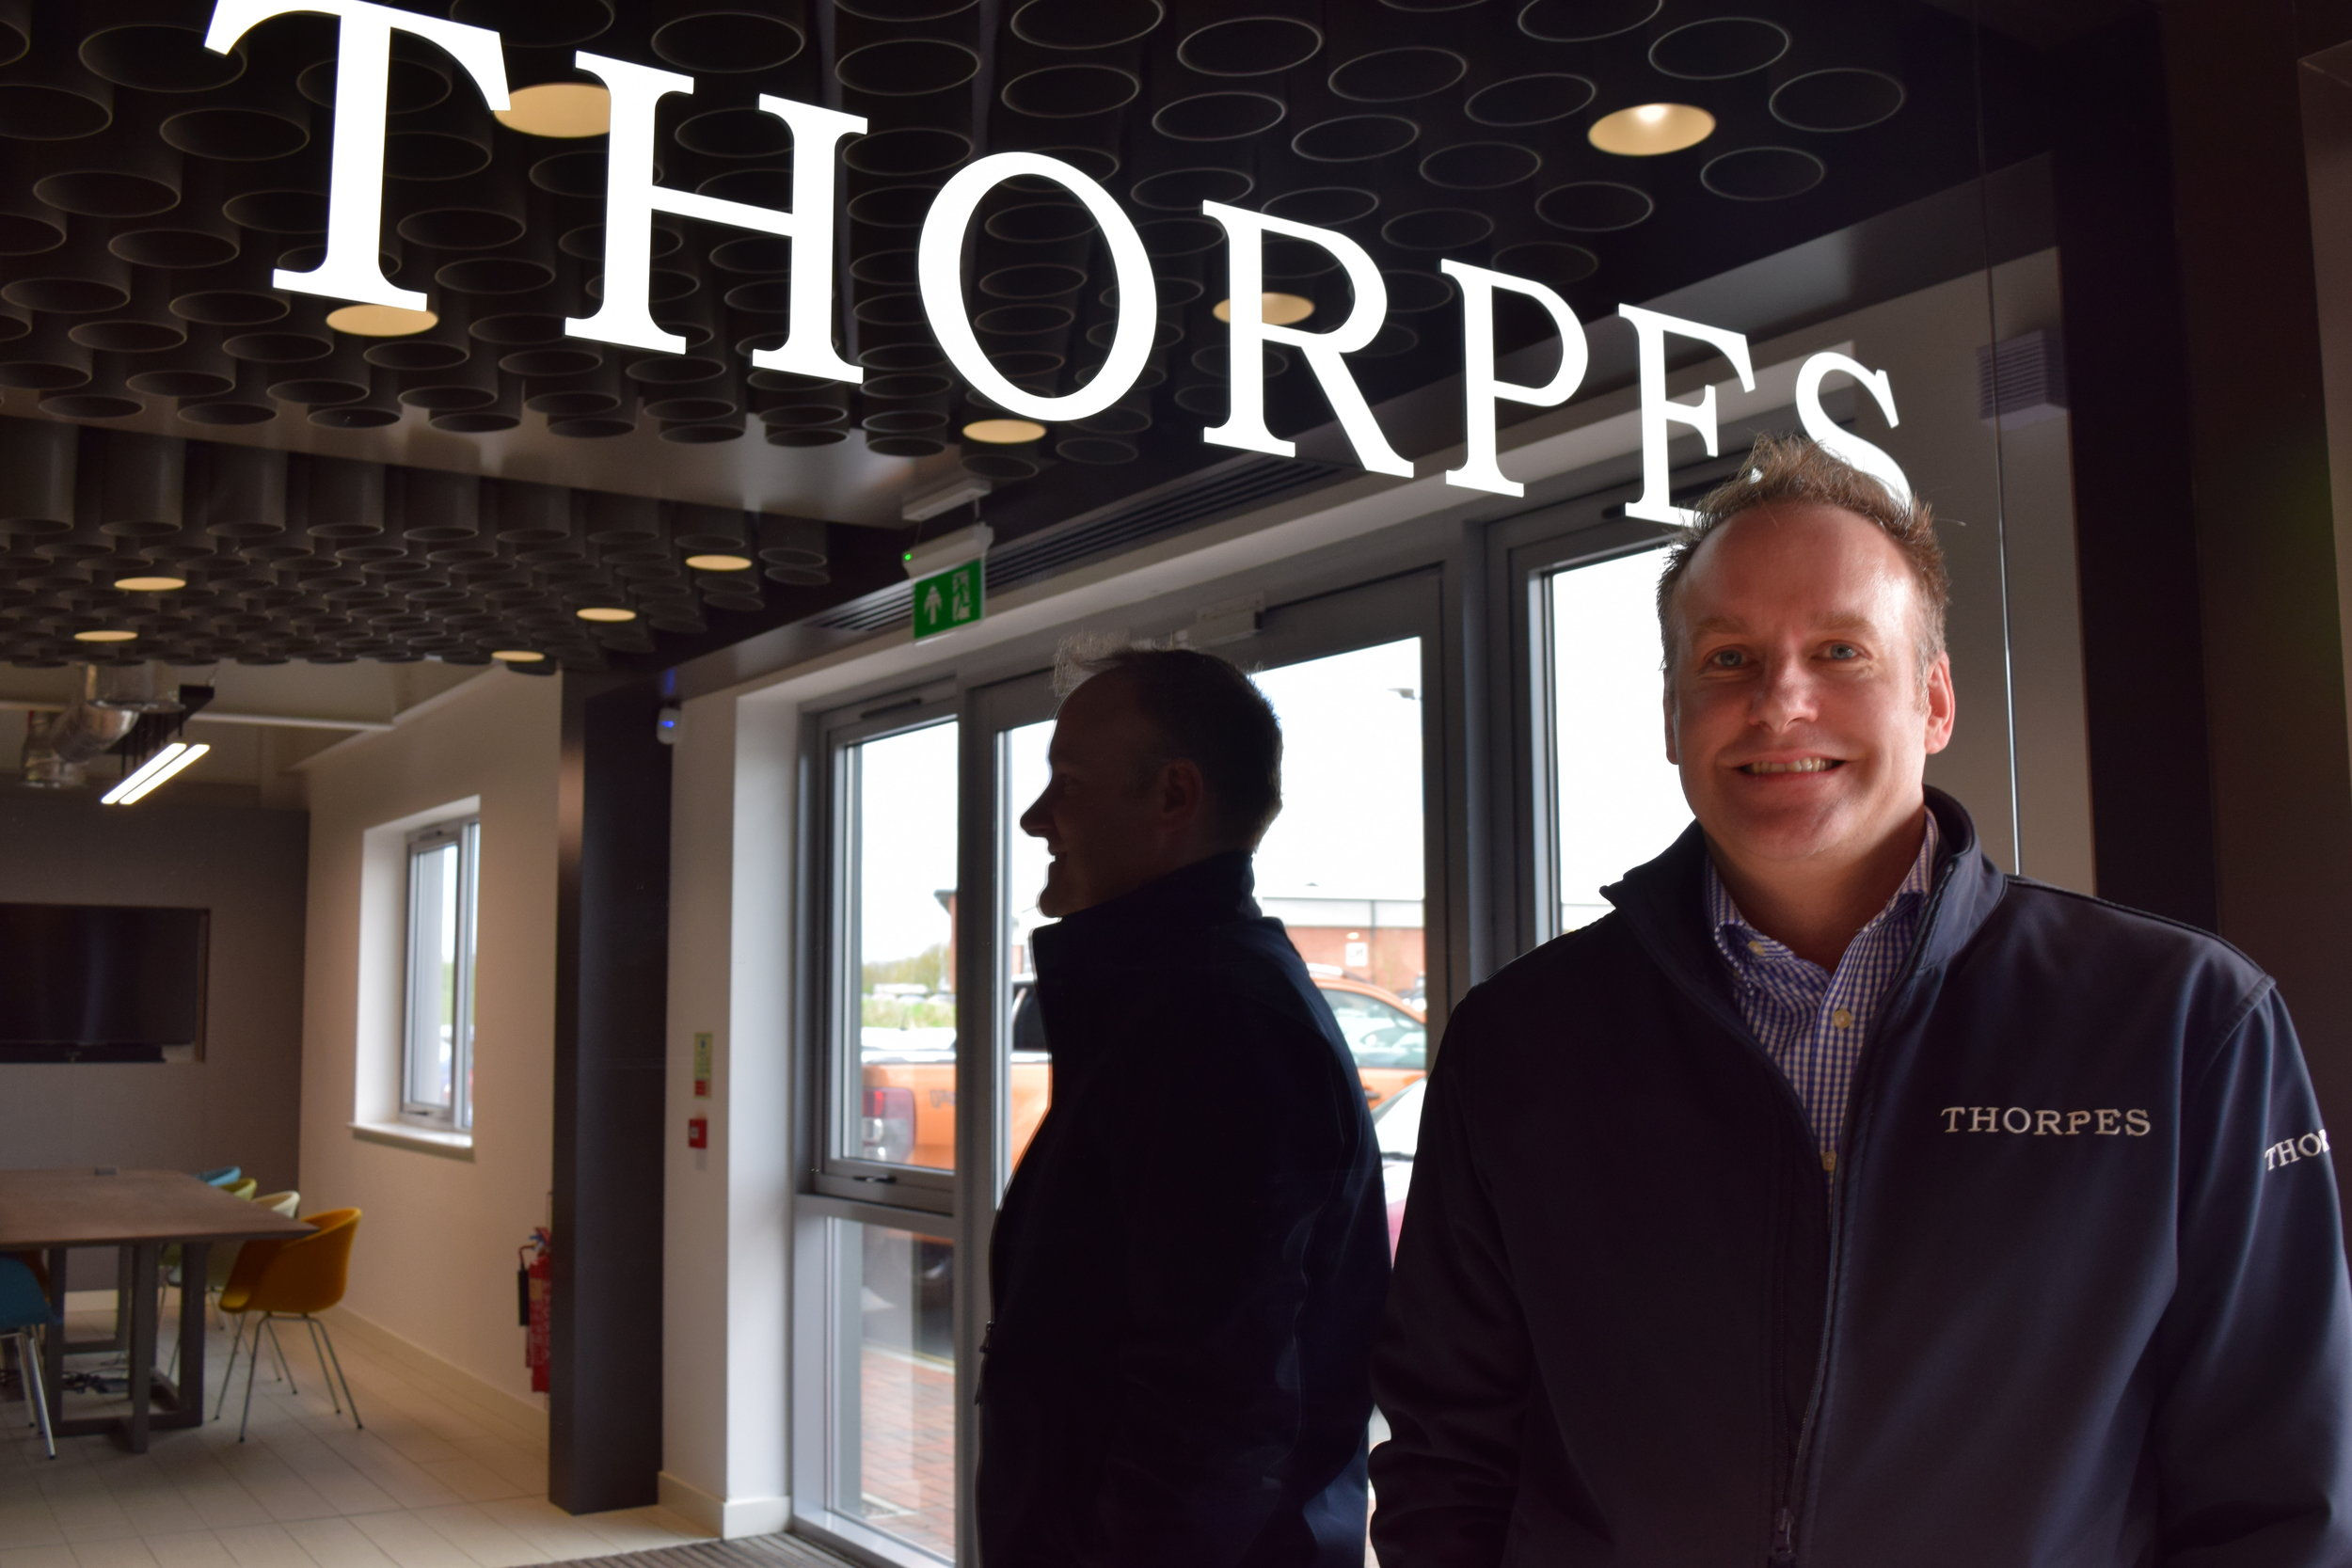 David Dean becomes Managing Director at Thorpes Joinery after nearly 17 years with the company